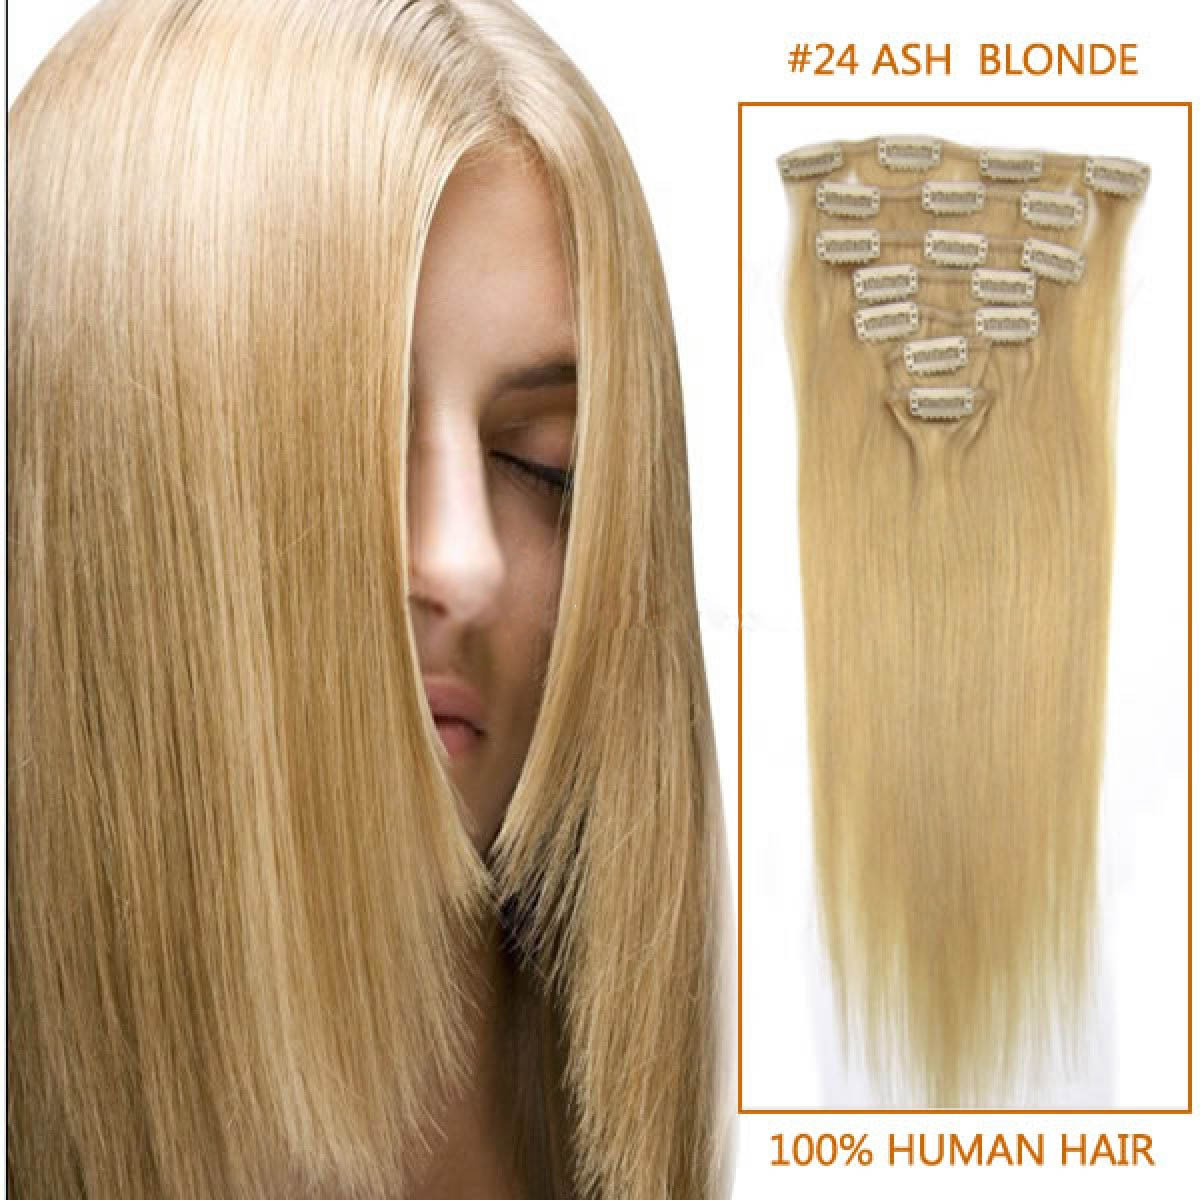 Inch 24 ash blonde clip in human hair extensions 10pcs 26 inch 24 ash blonde clip in human hair extensions 10pcs pmusecretfo Image collections